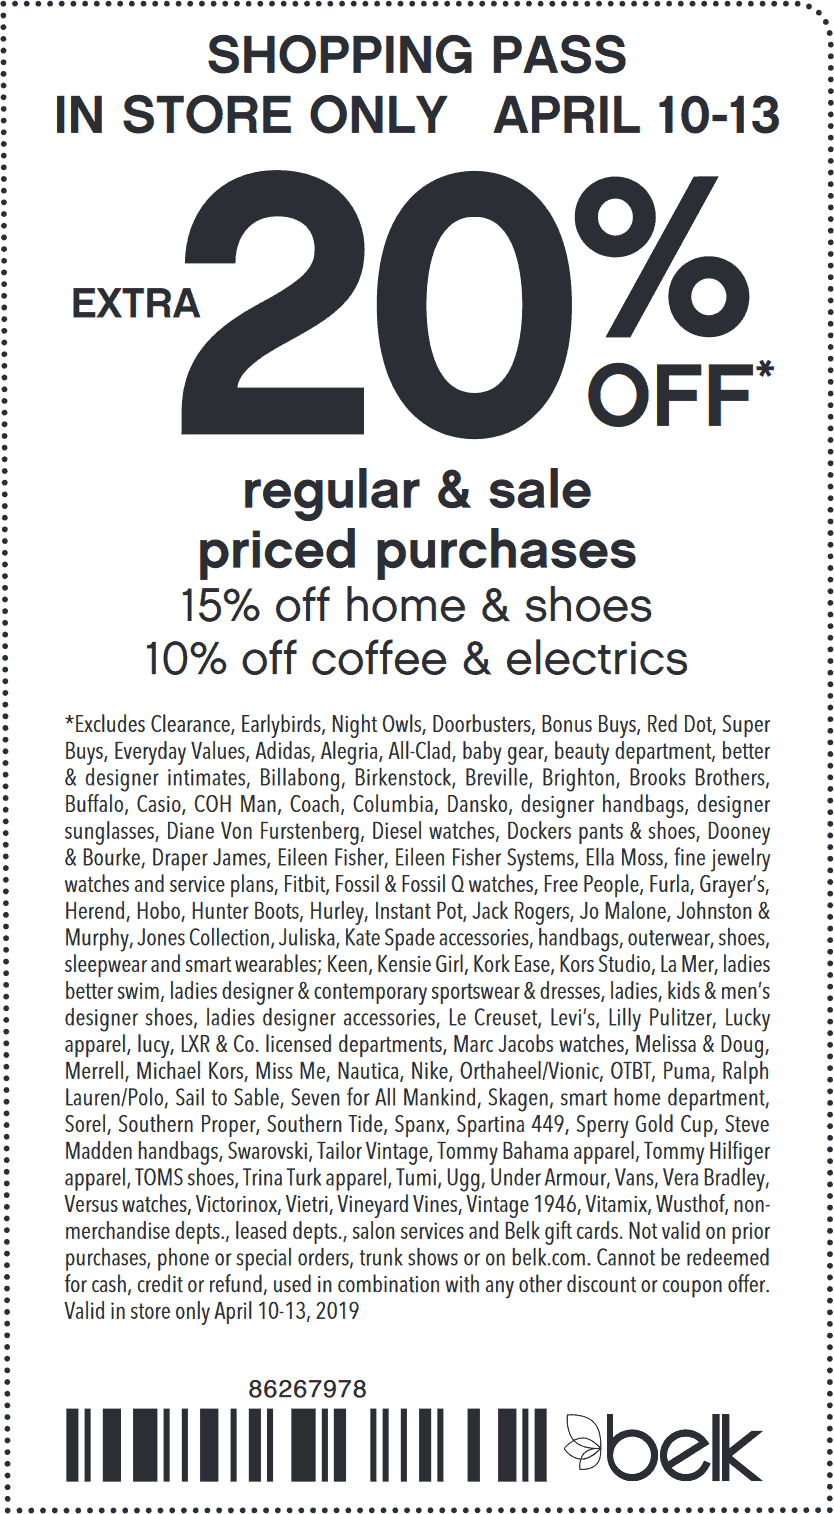 Belk Coupon June 2019 Extra 20% off at Belk